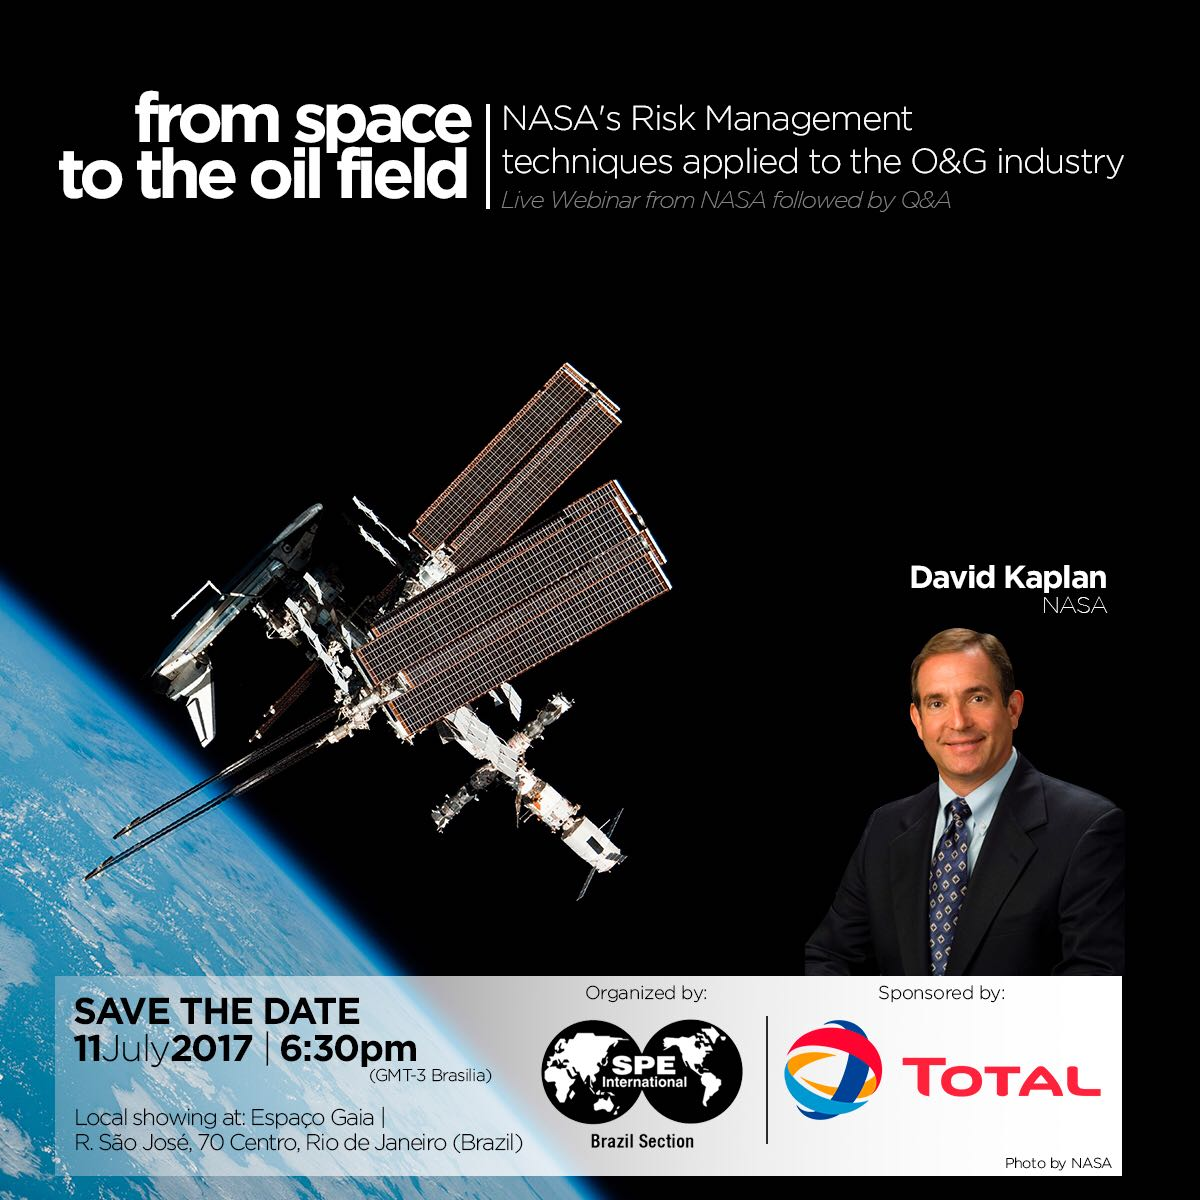 Live Webinar: From space to the oil field – NASA's Risk Management techniques applied to O&G industry